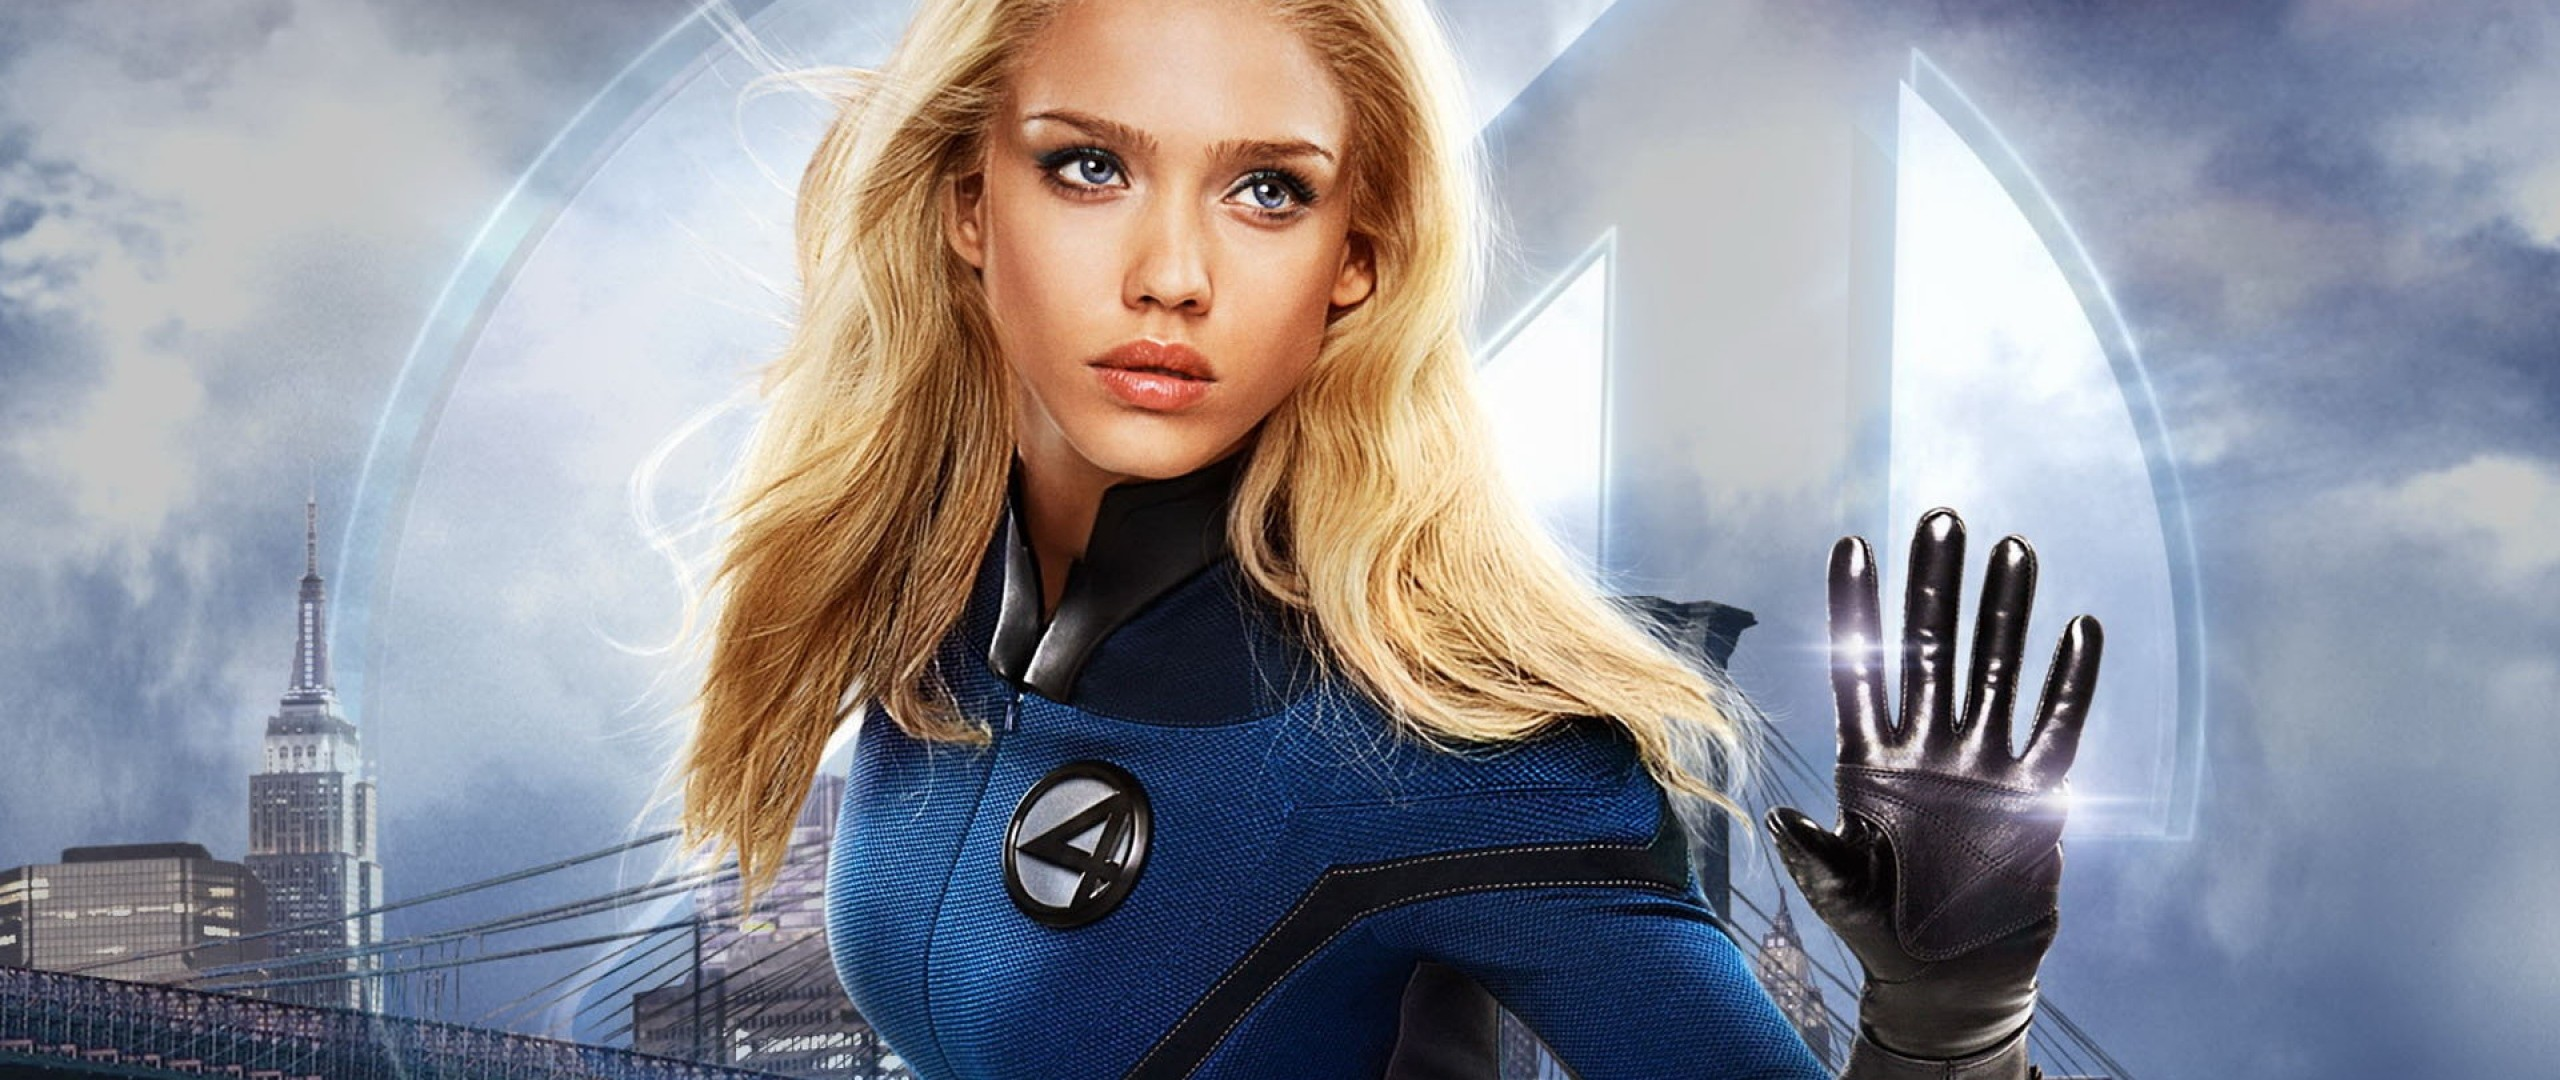 2560x1080 Invisible Woman Wallpapers